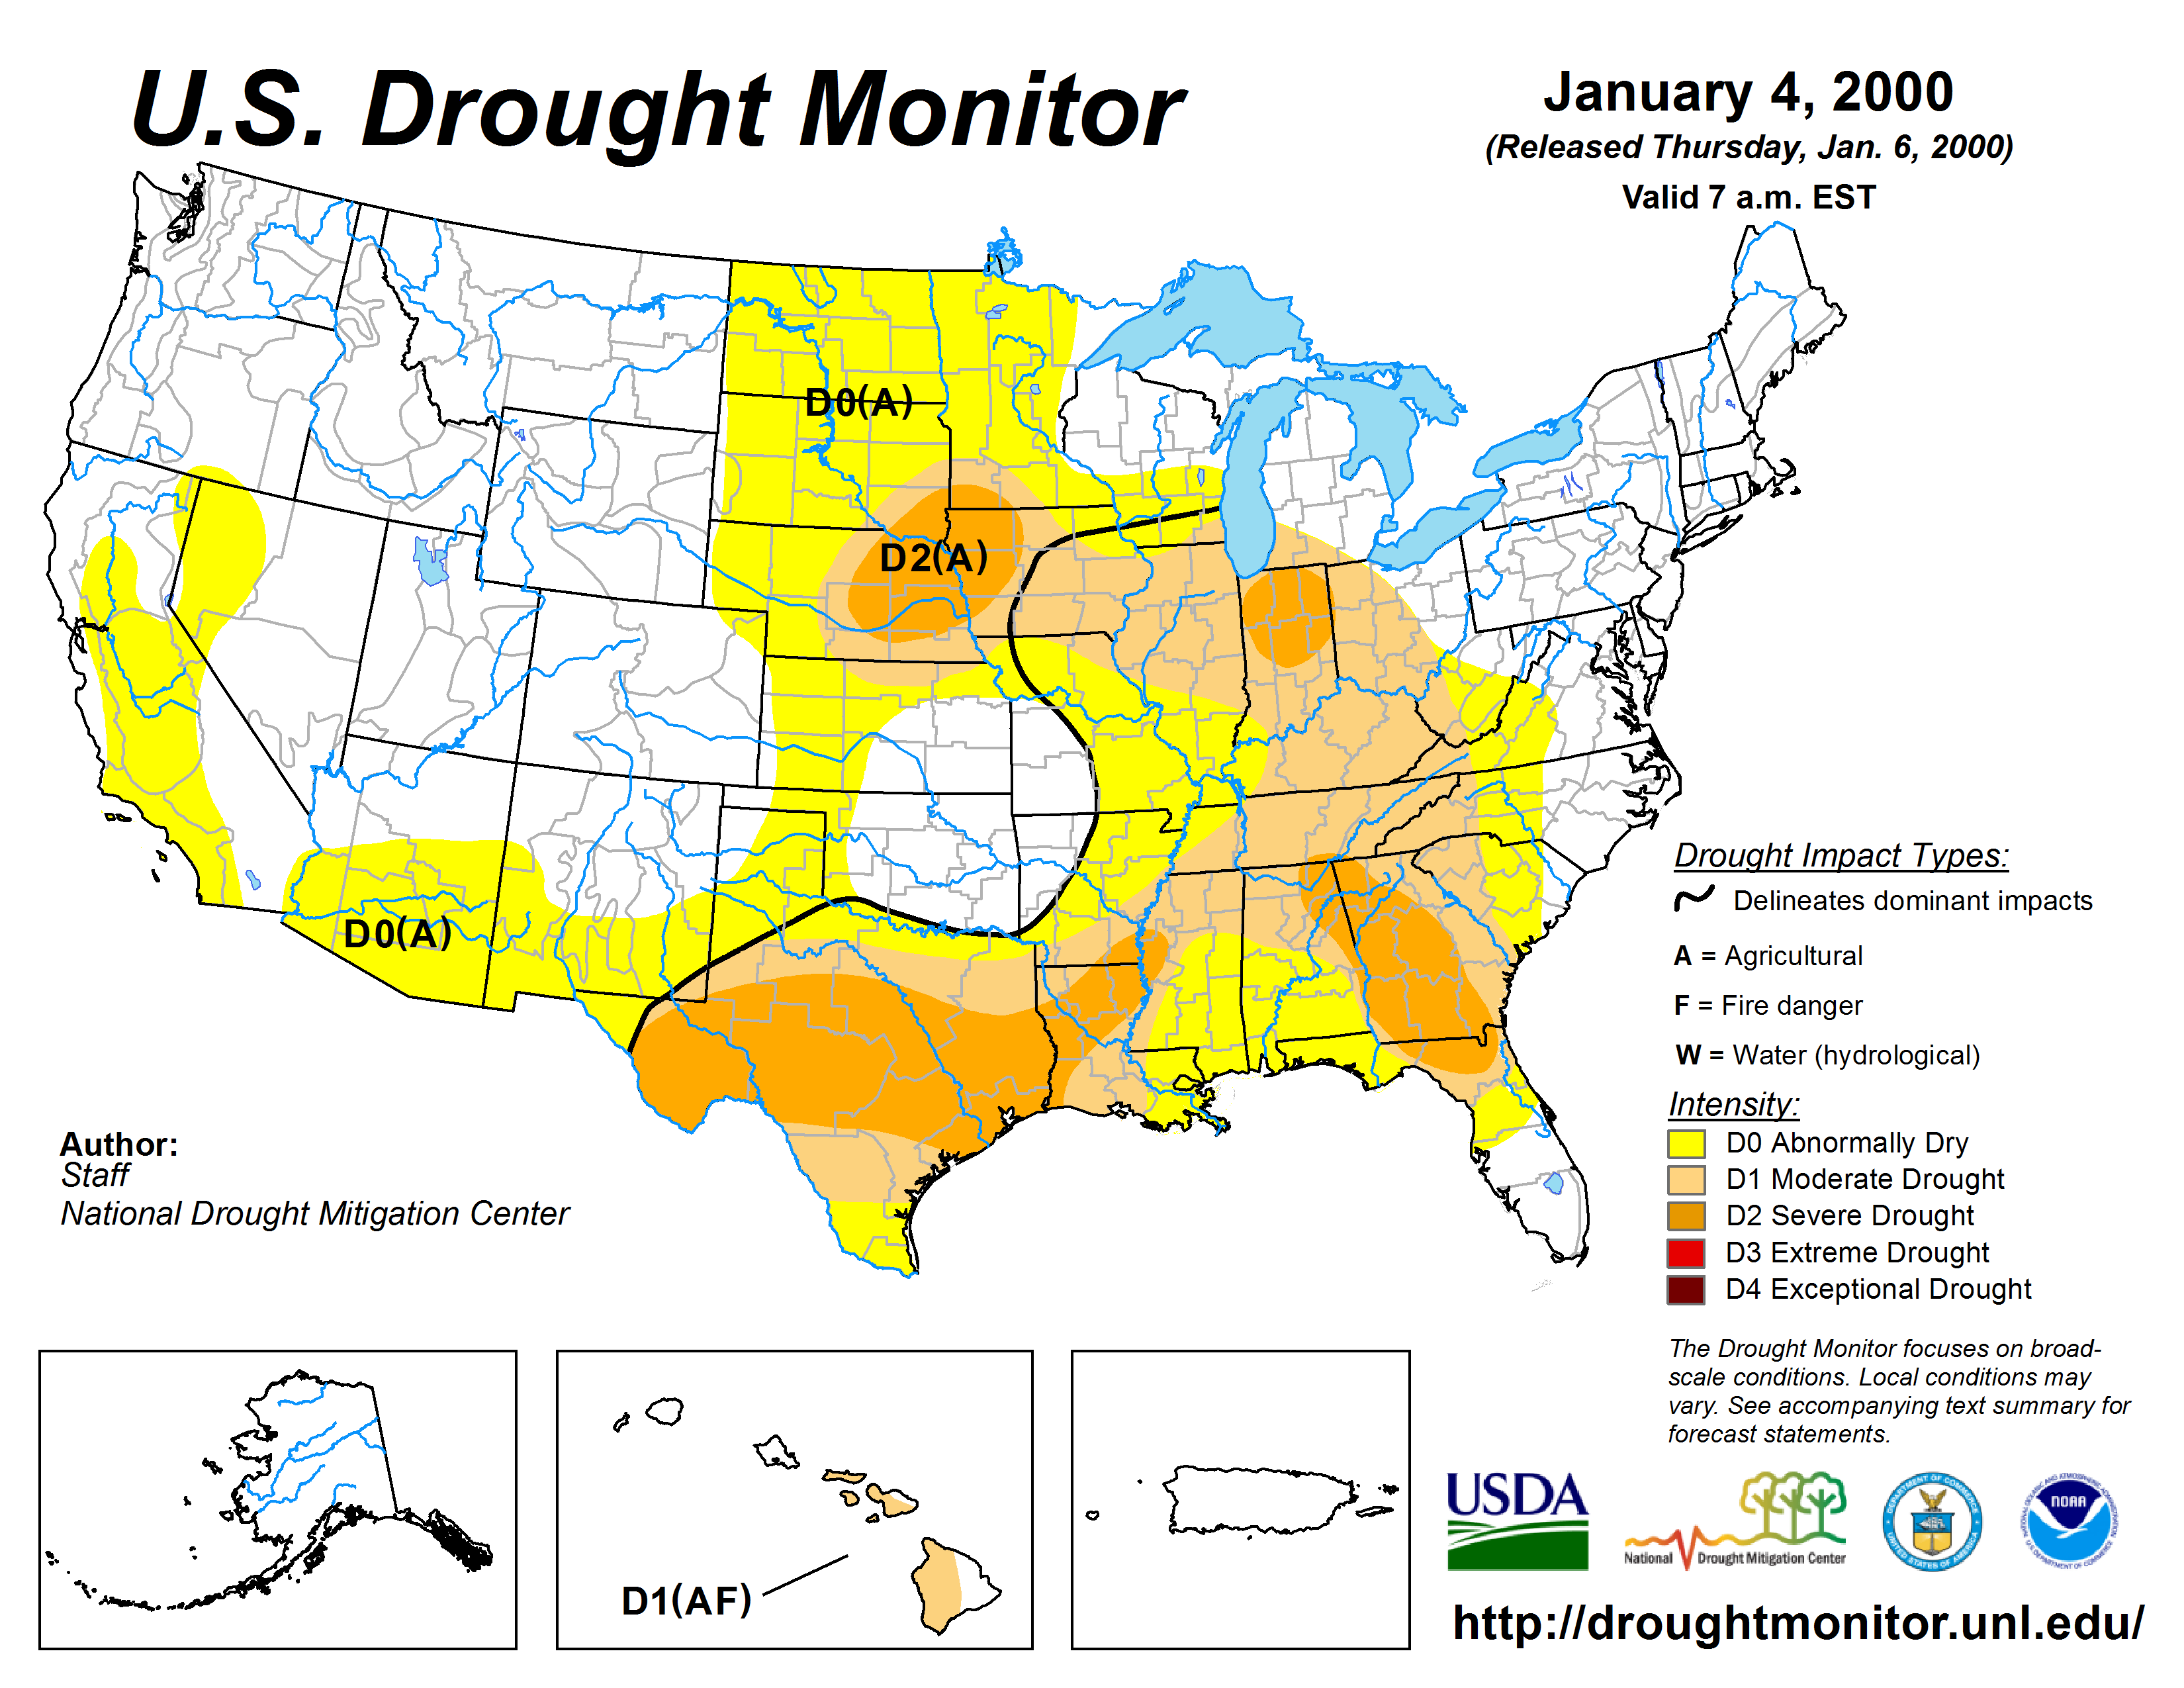 Climate and Agriculture in the Southeast | U. S. Drought ... on united states national map, united states satellite map, united states road conditions map, united states extreme weather map, united states radar map, united states temperature map, united states annual rainfall map, united states air quality map, united states canada map, united states earthquakes map, united states severe weather map, united states precipitation map, united states uv index map, united states forecast map, united states lightning map, united states surface map, united states wind map,